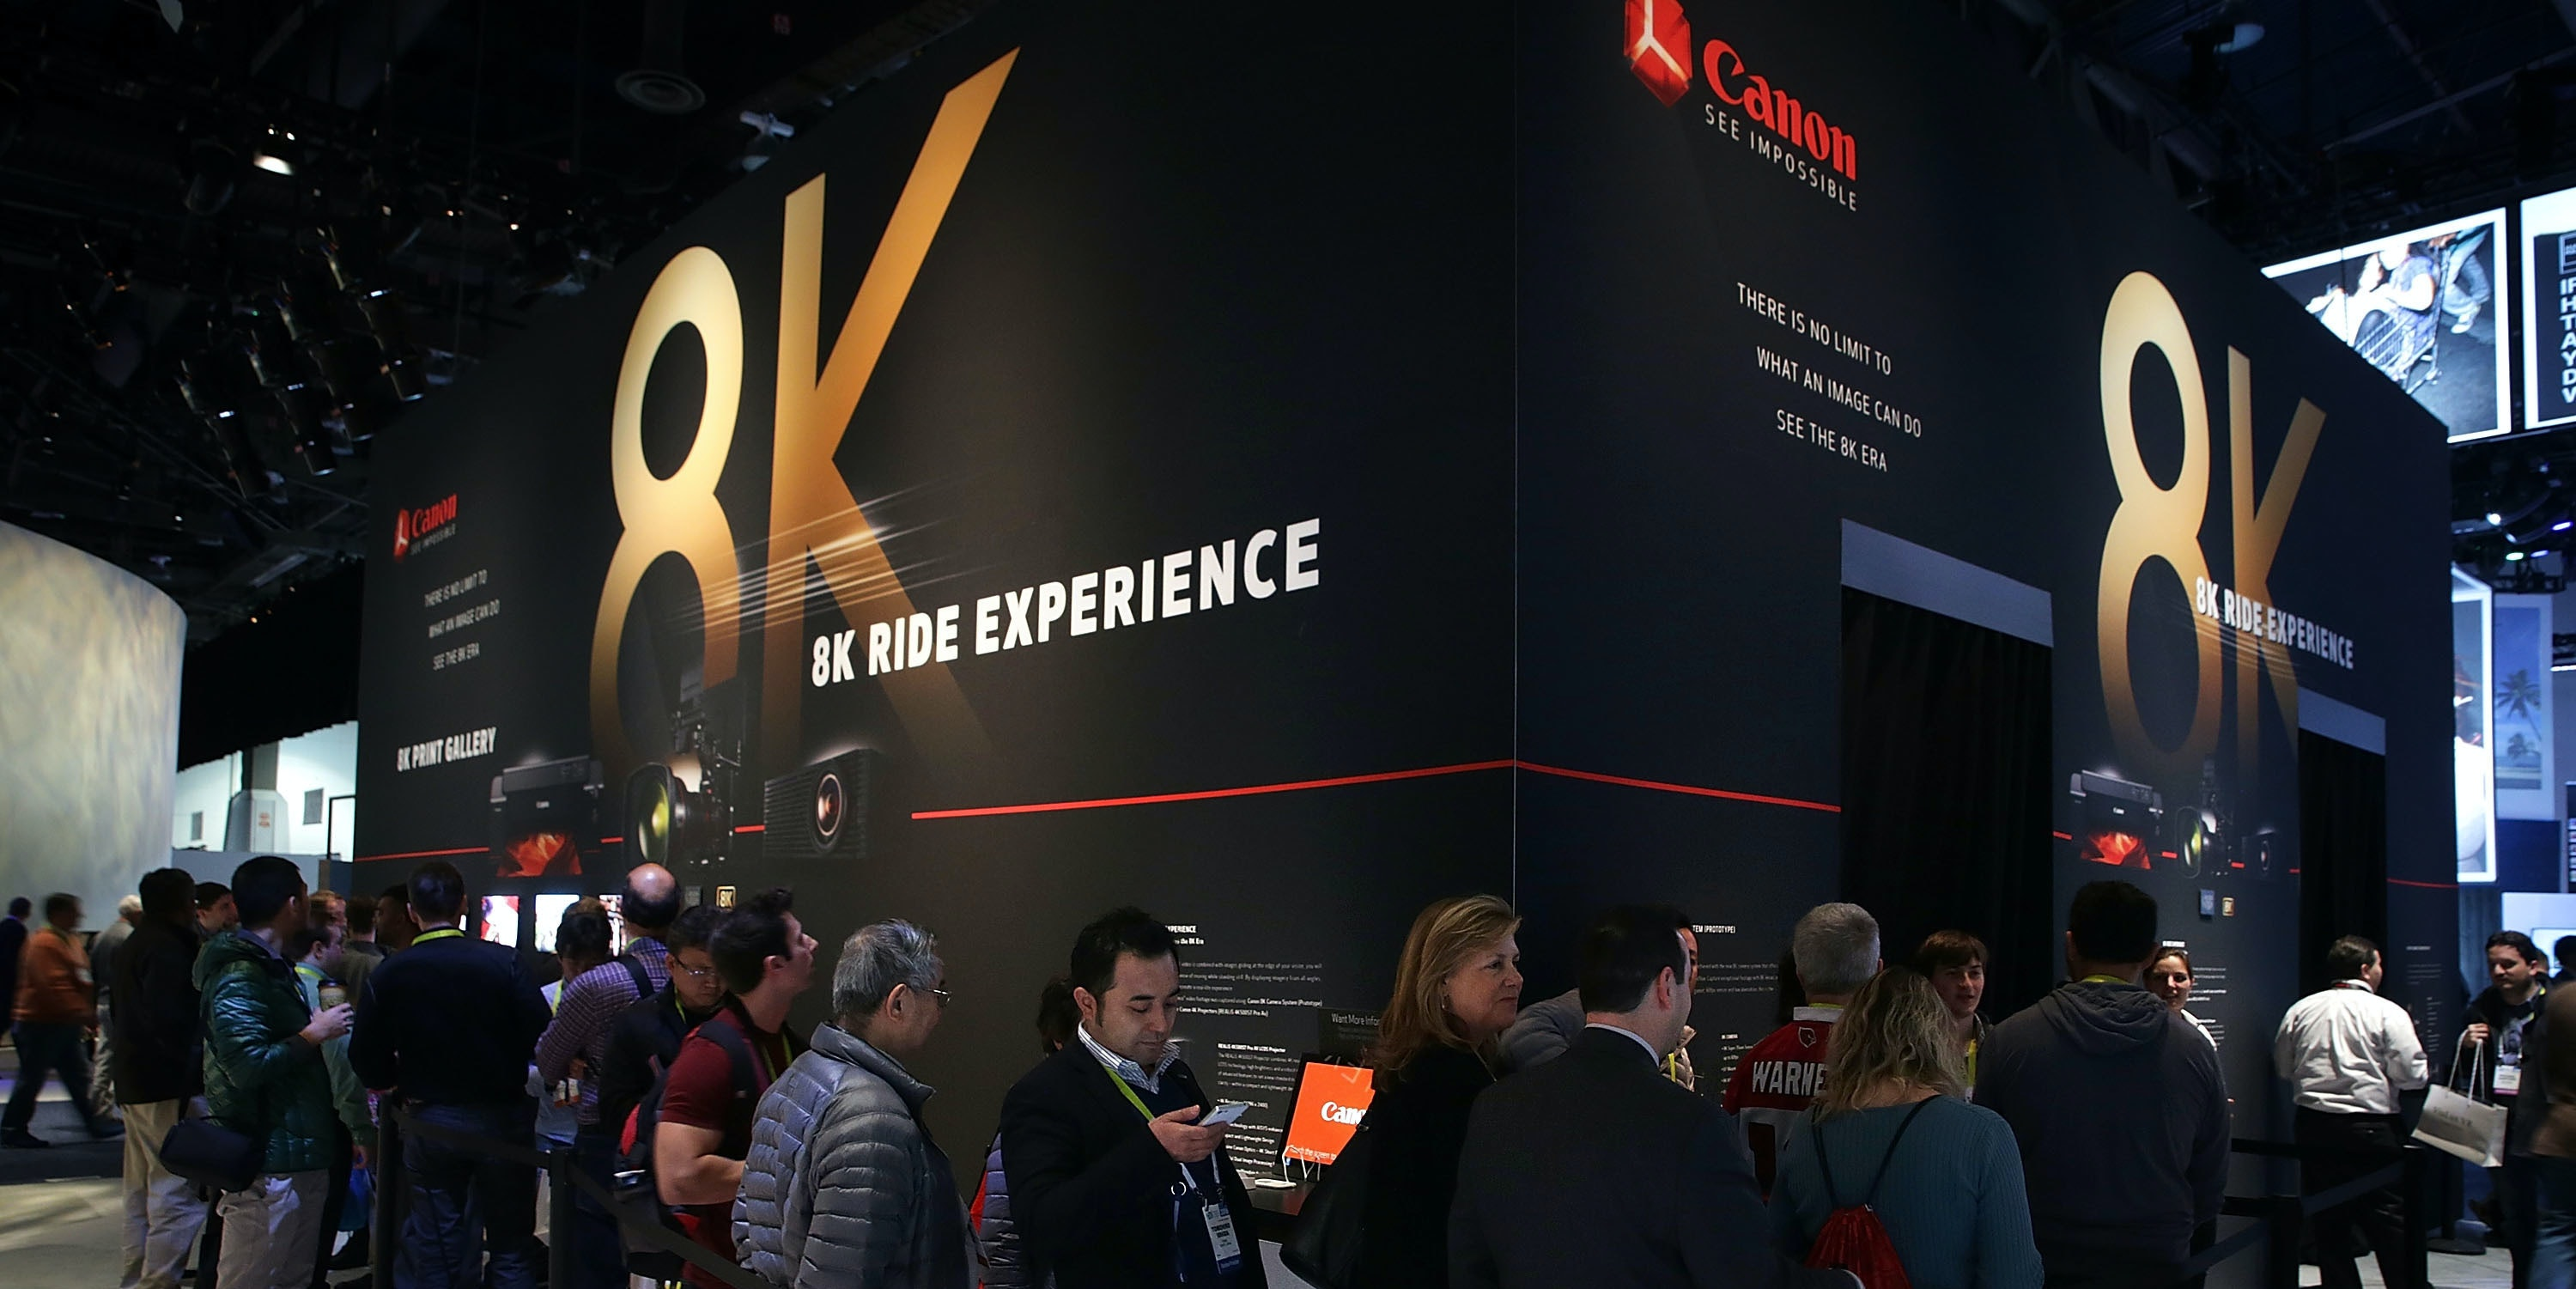 LAS VEGAS, NV - JANUARY 07:  Show attendees wait in-line for the Canon 8K Ride Experience at CES 2016 at the Las Vegas Convention Center on January 7, 2016 in Las Vegas, Nevada. CES, the world's largest annual consumer technology trade show, runs through January 9 and features 3,600 exhibitors showing off their latest products and services to more than 150,000 attendees.  (Photo by Alex Wong/Getty Images)